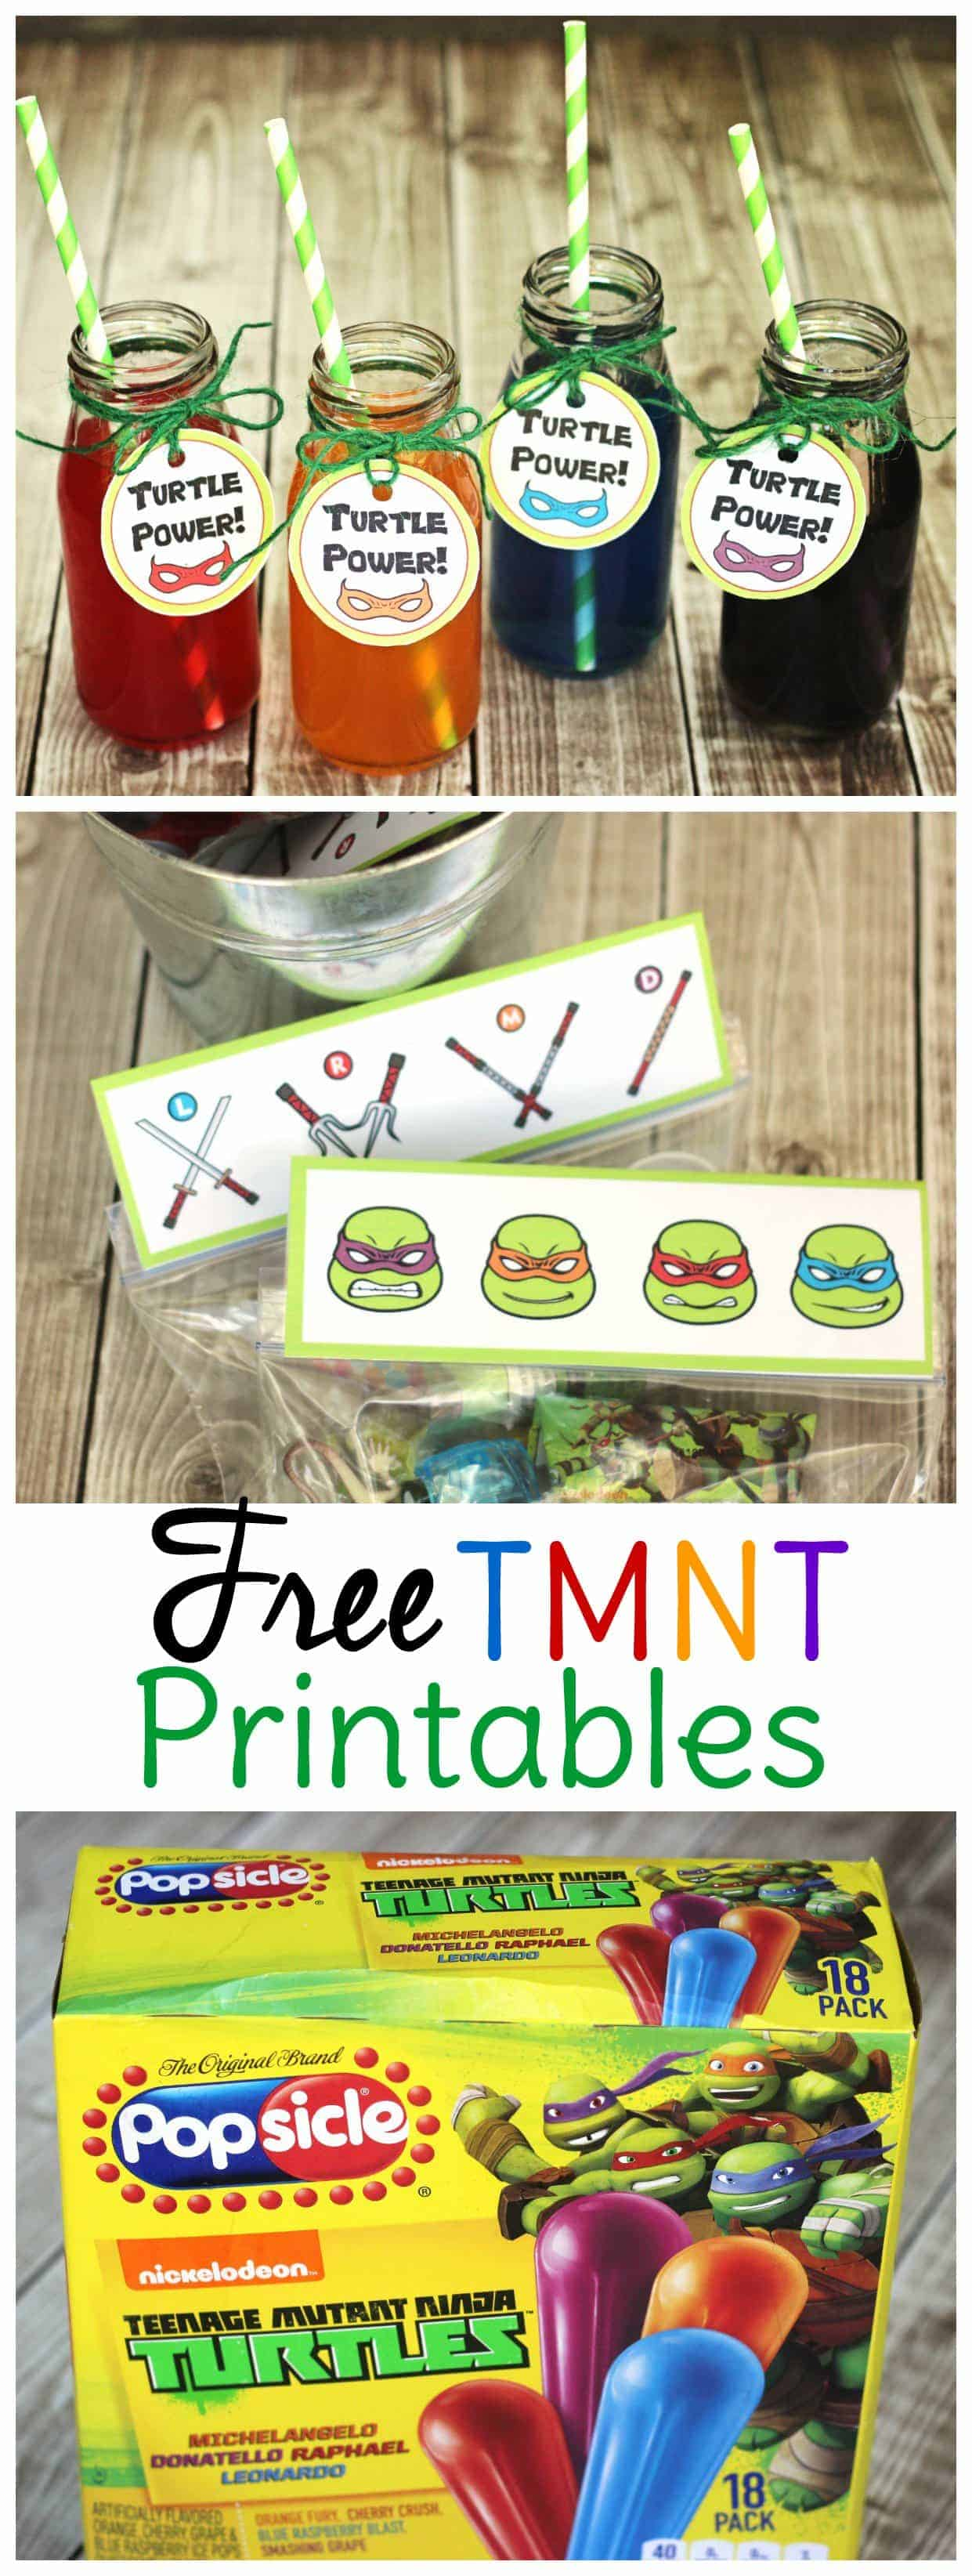 Use these TMNT party ideas and free TMNT printables to throw an epic birthday party or playdate! You can't beat FREE TMNT party free printables